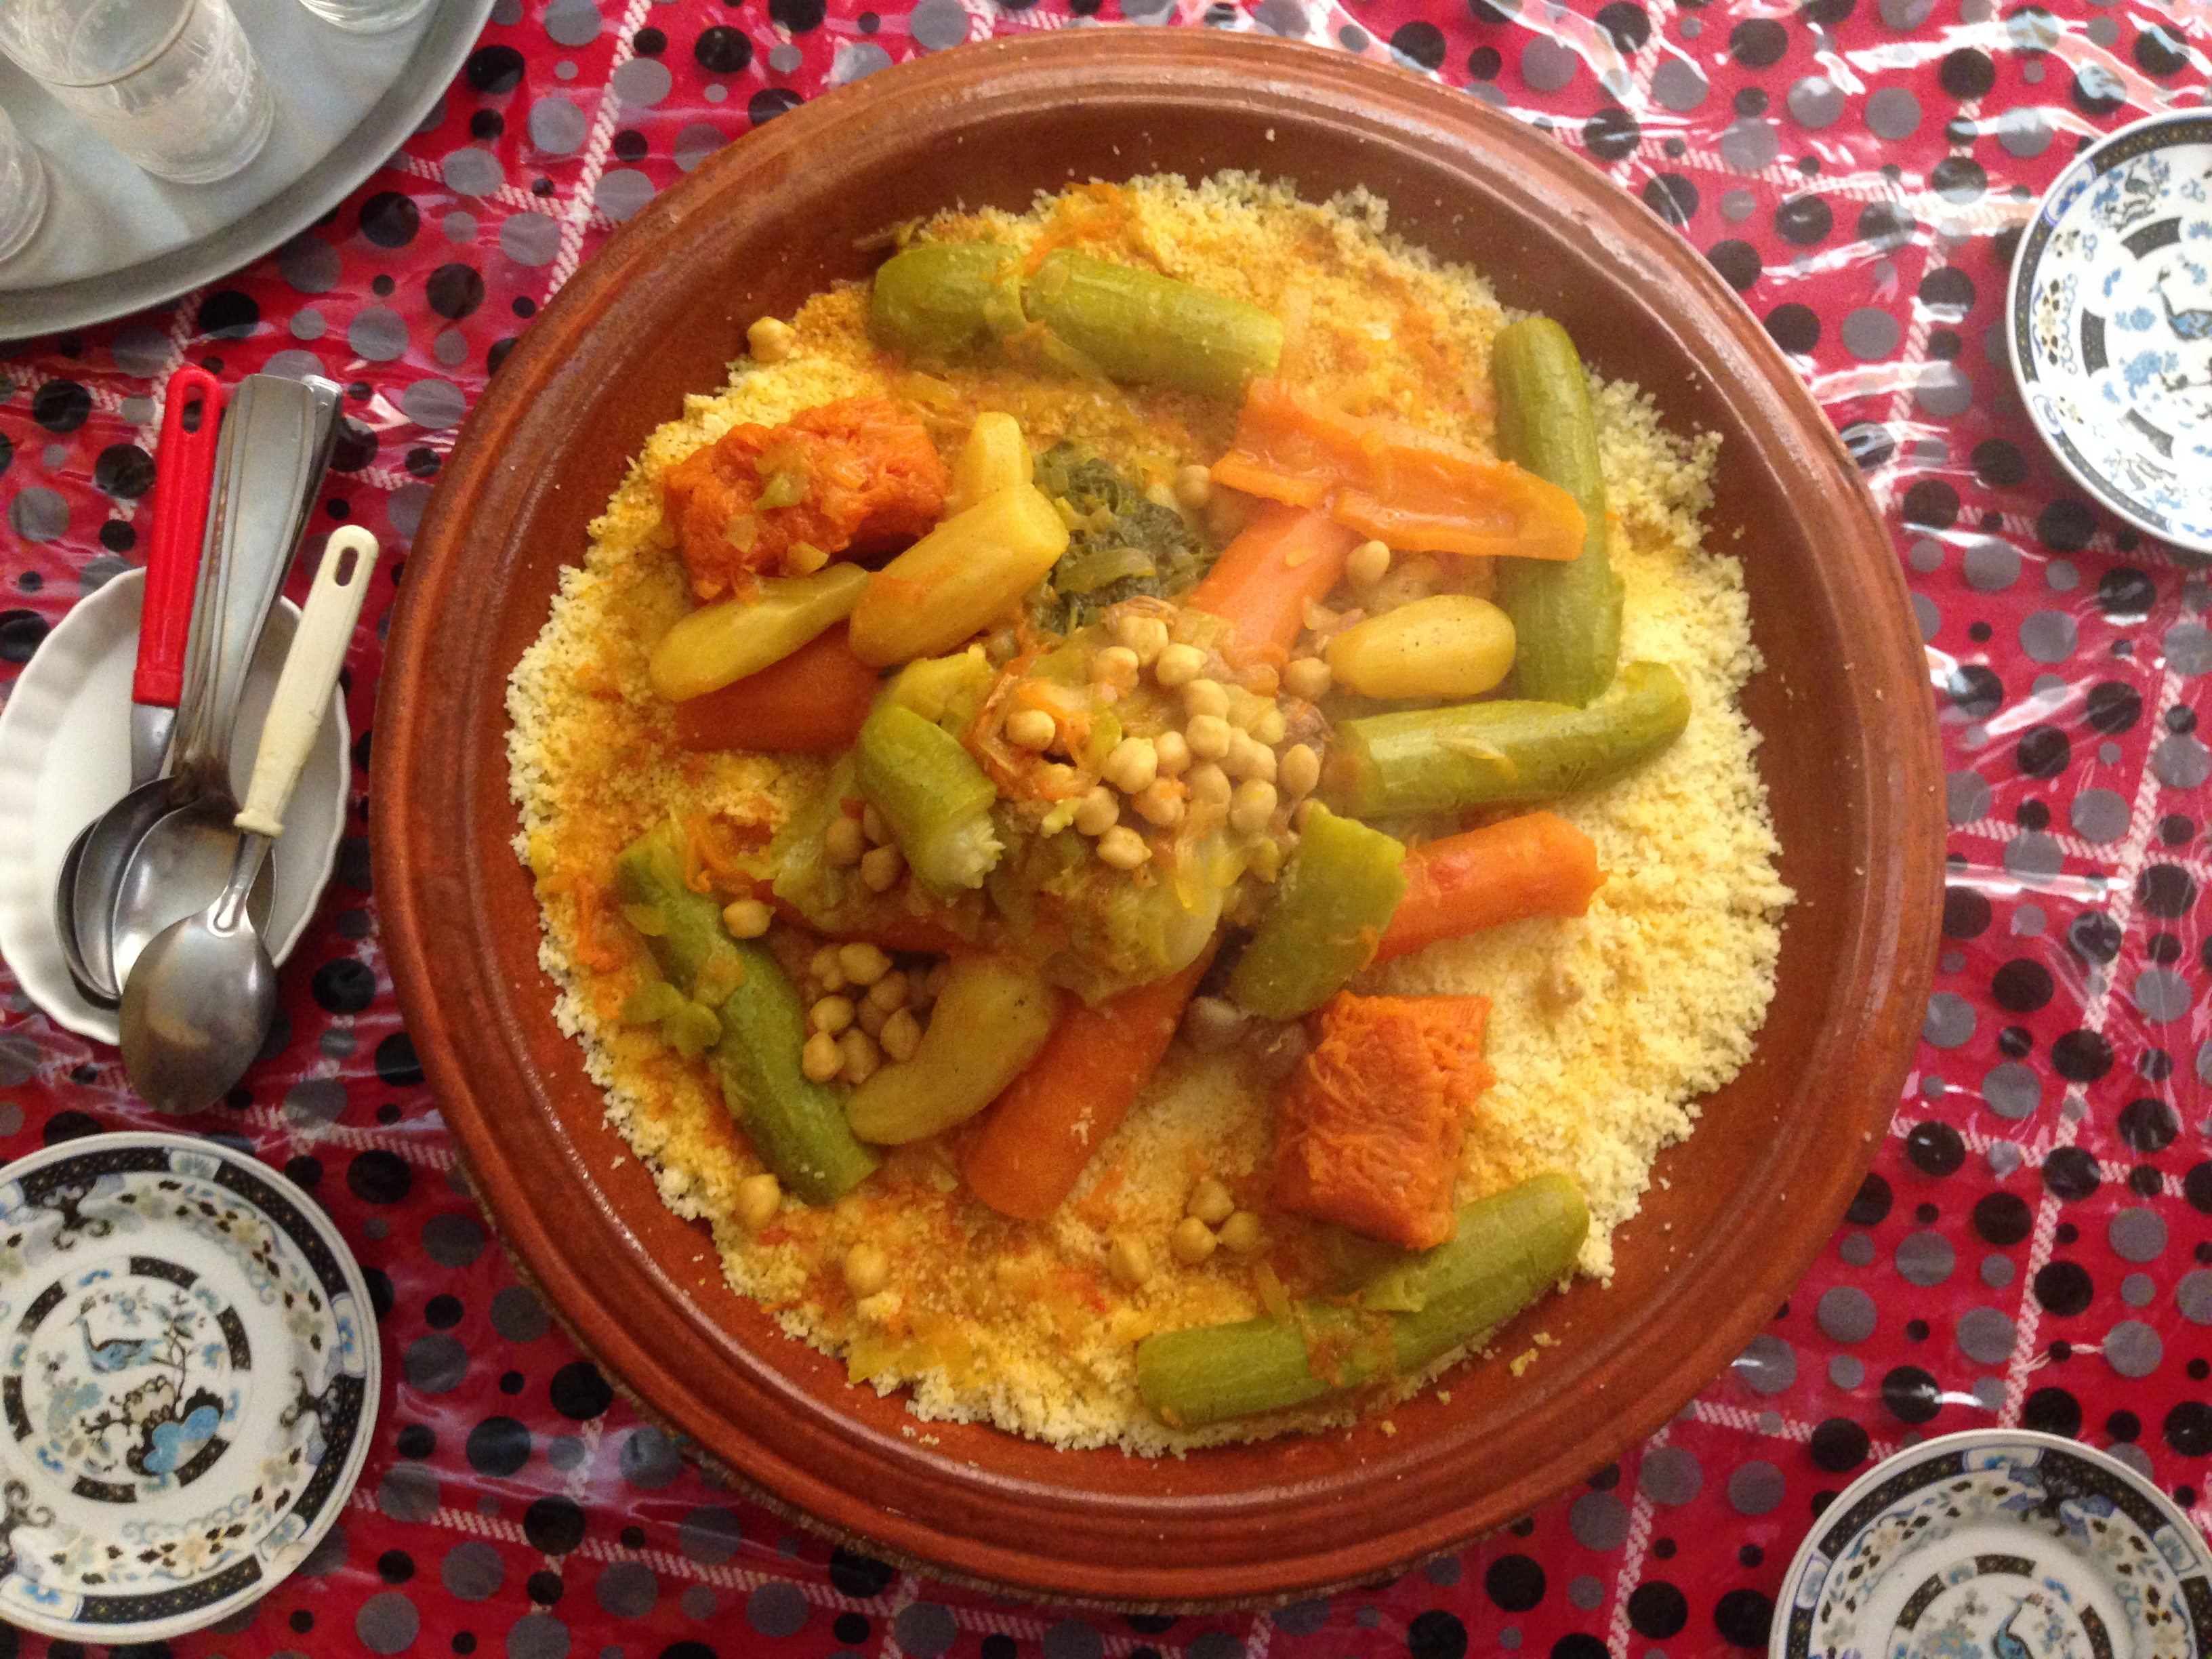 Plat de couscous. Commons